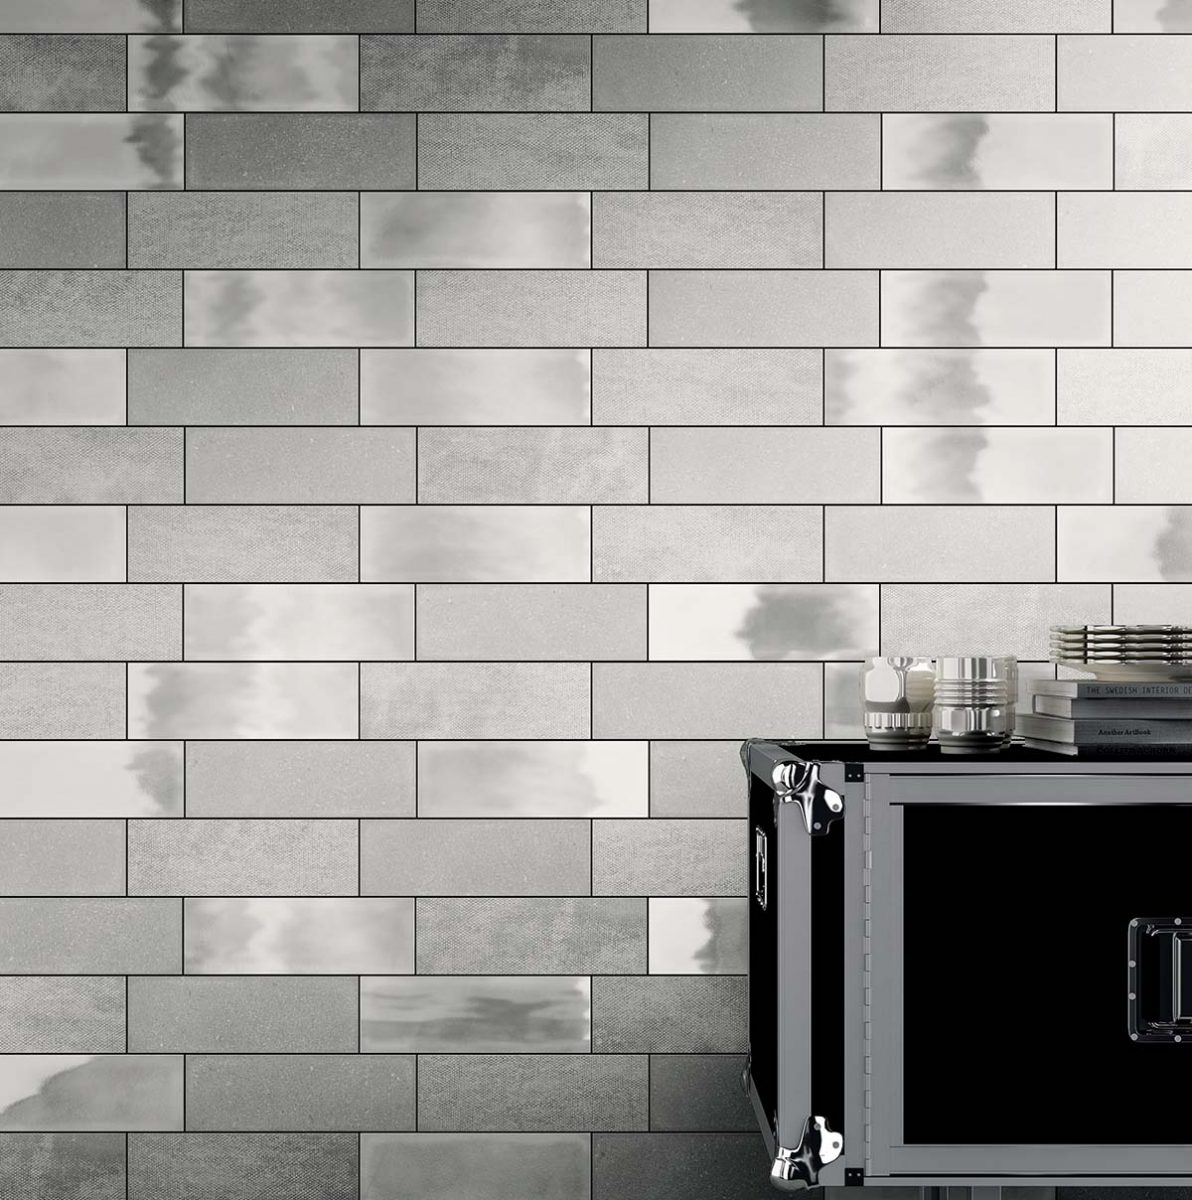 stoneworks industrial wall surfaces